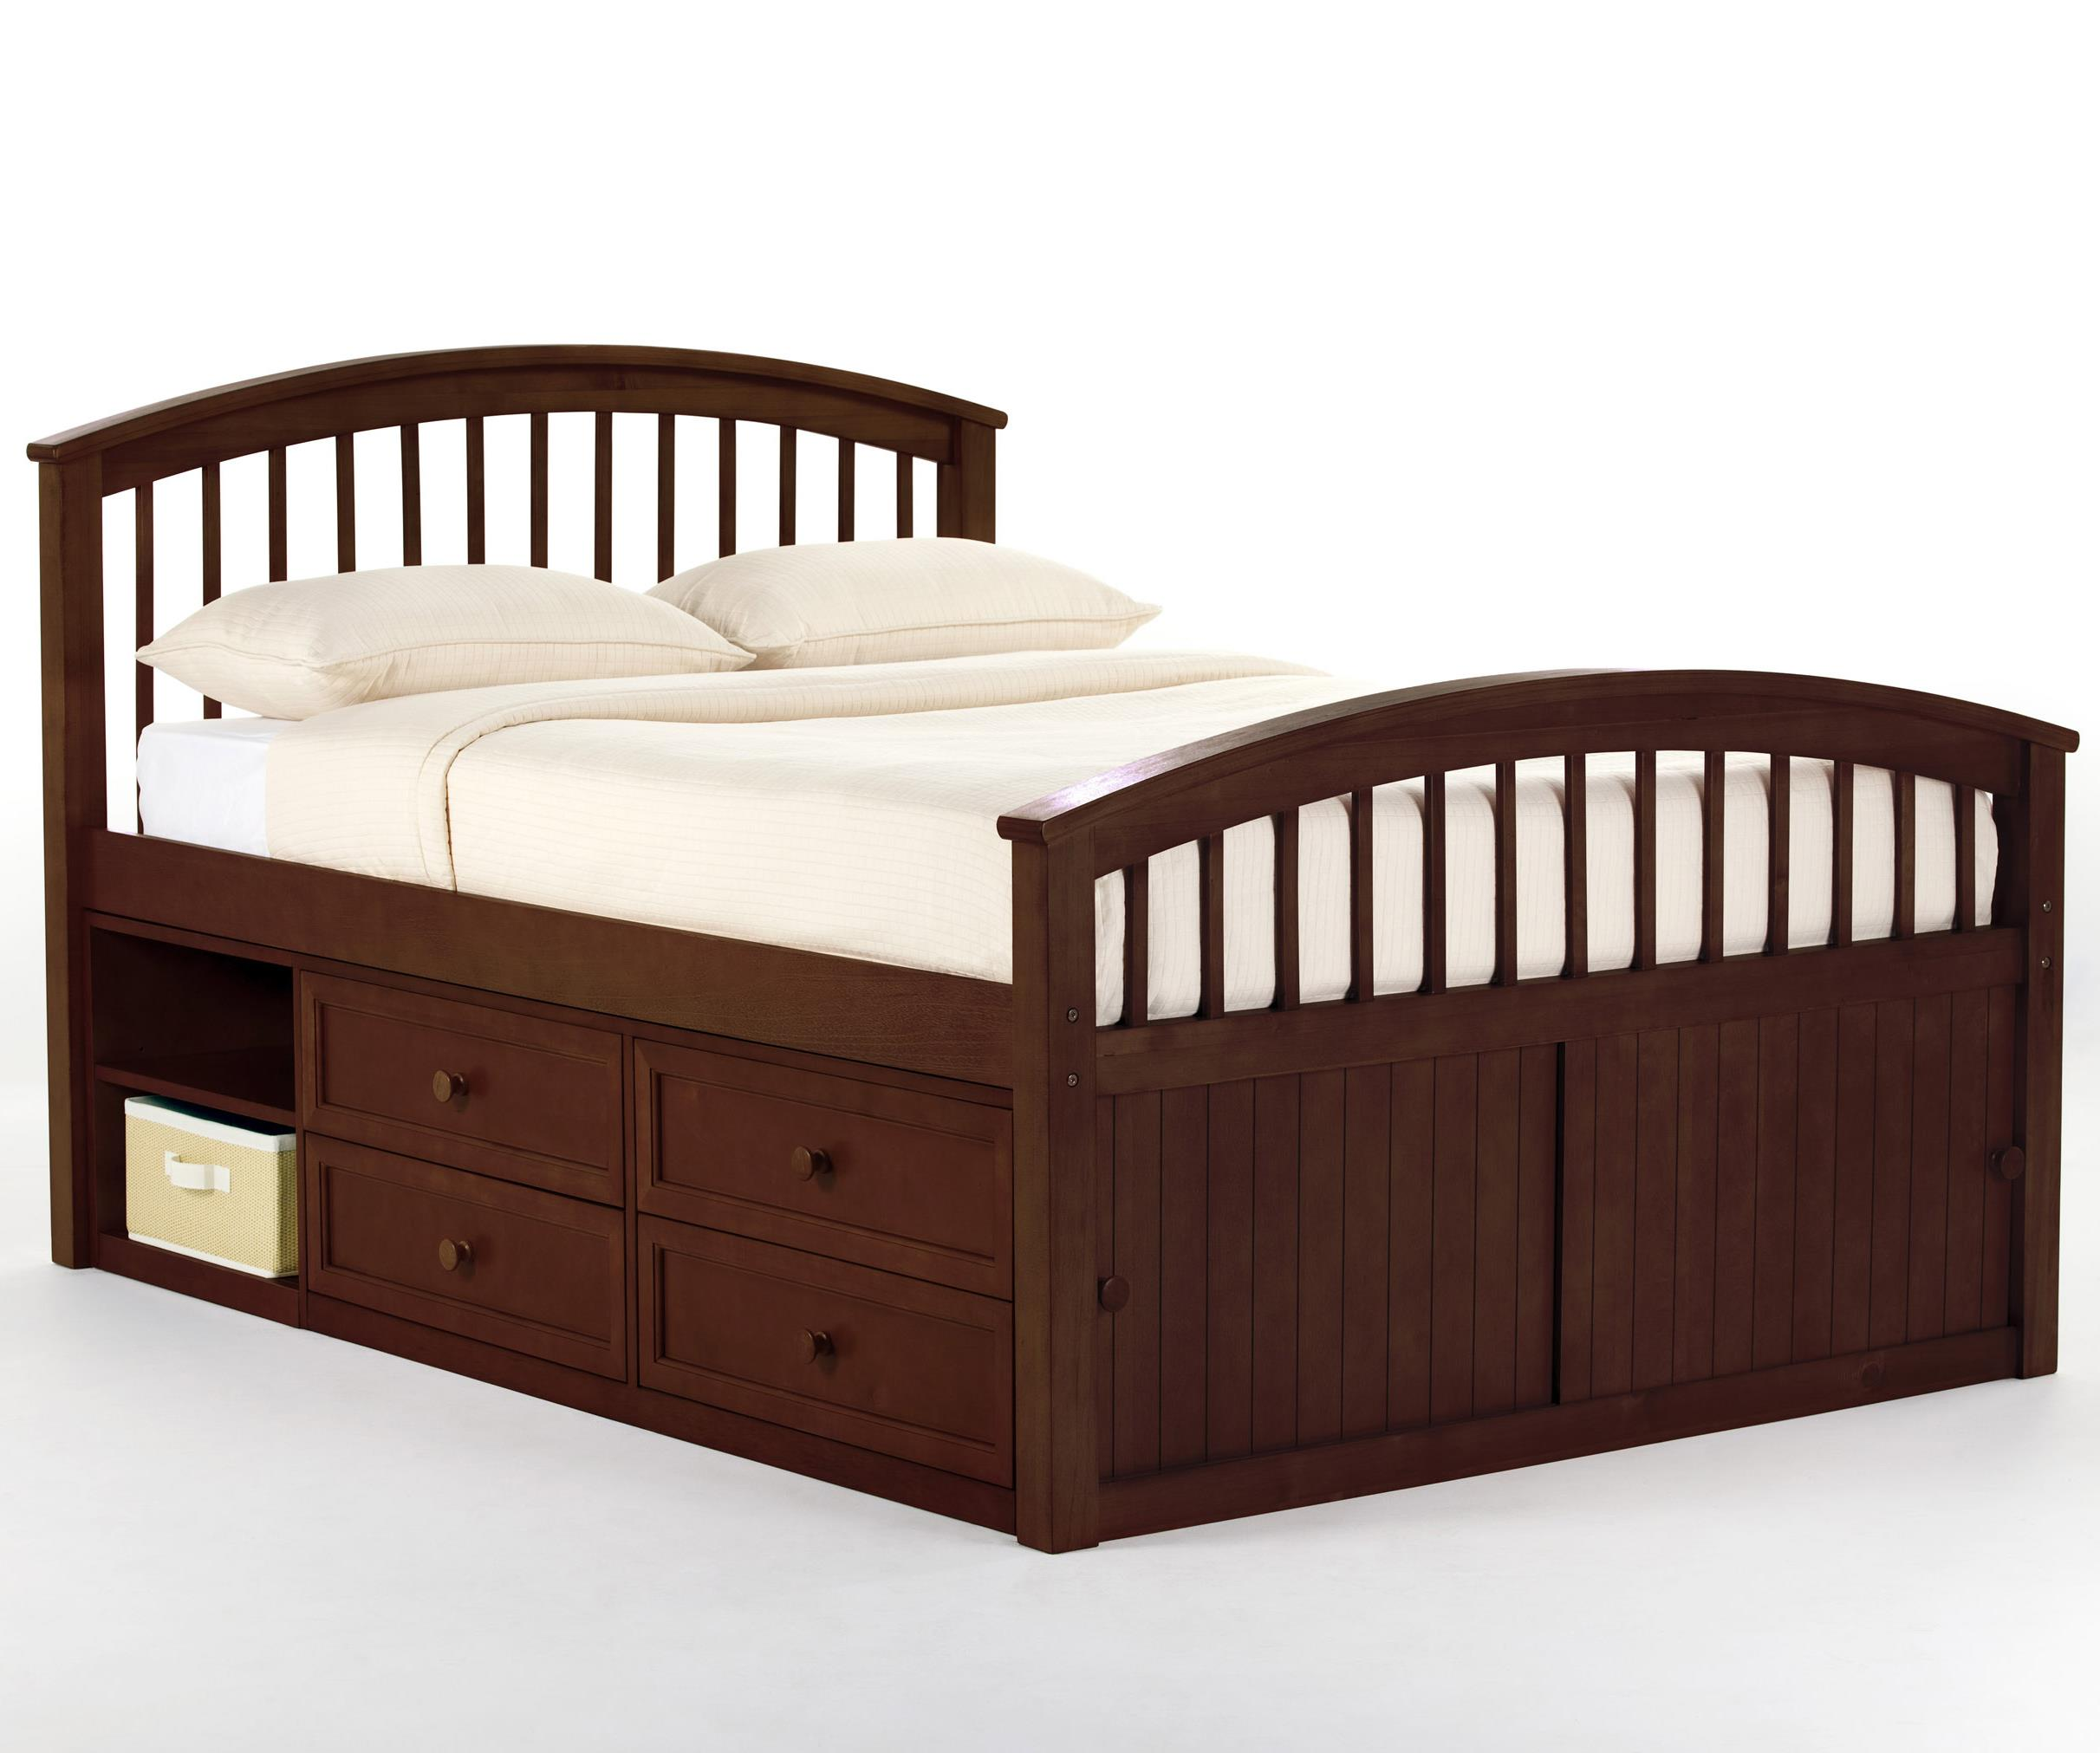 captains trundle irving in bookcase kids portofino donco cappuccino hugo full bed